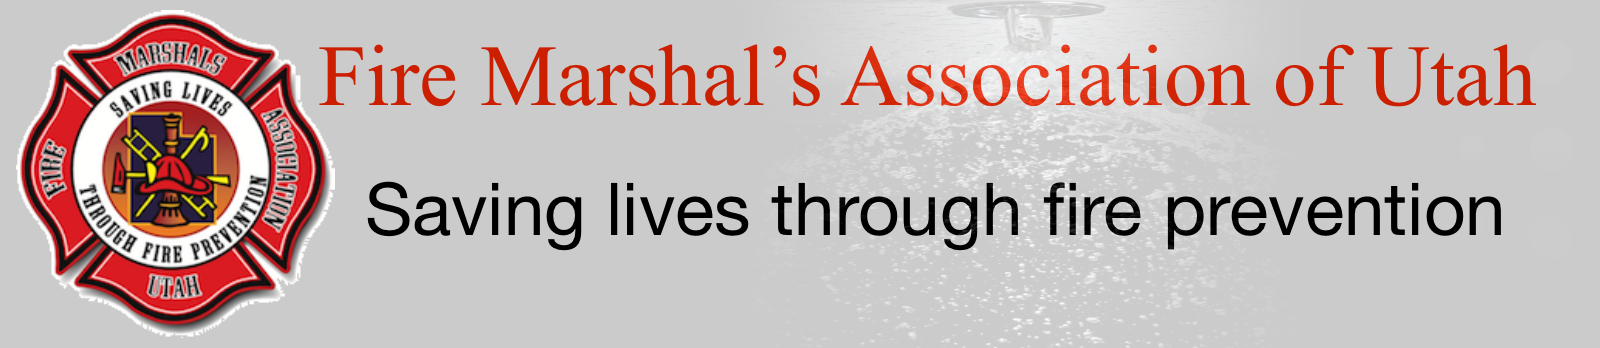 Fire Marshal's Association of Utah